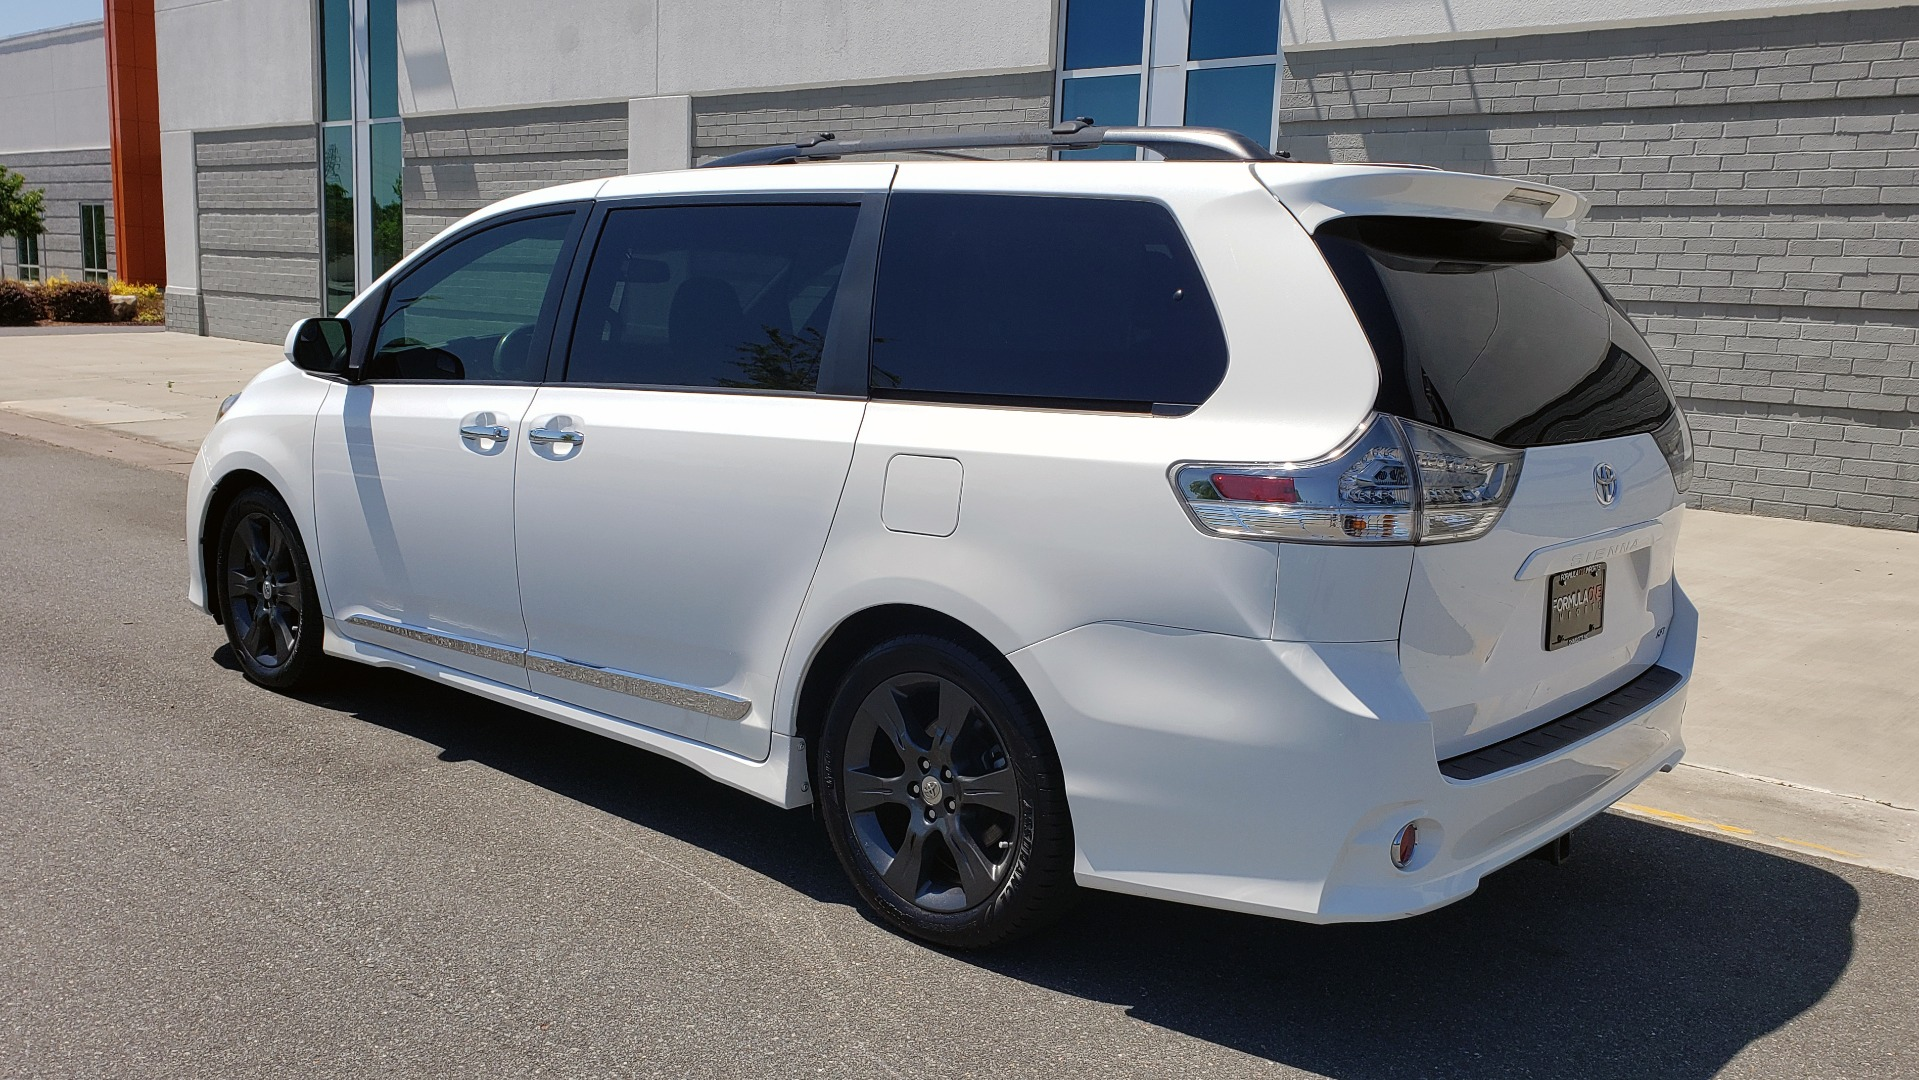 Used 2015 Toyota SIENNA SE 3.5L / FWD / 3-ROWS / 8-PASS / SUNROOF / DVD / REARVIEW for sale $21,995 at Formula Imports in Charlotte NC 28227 5